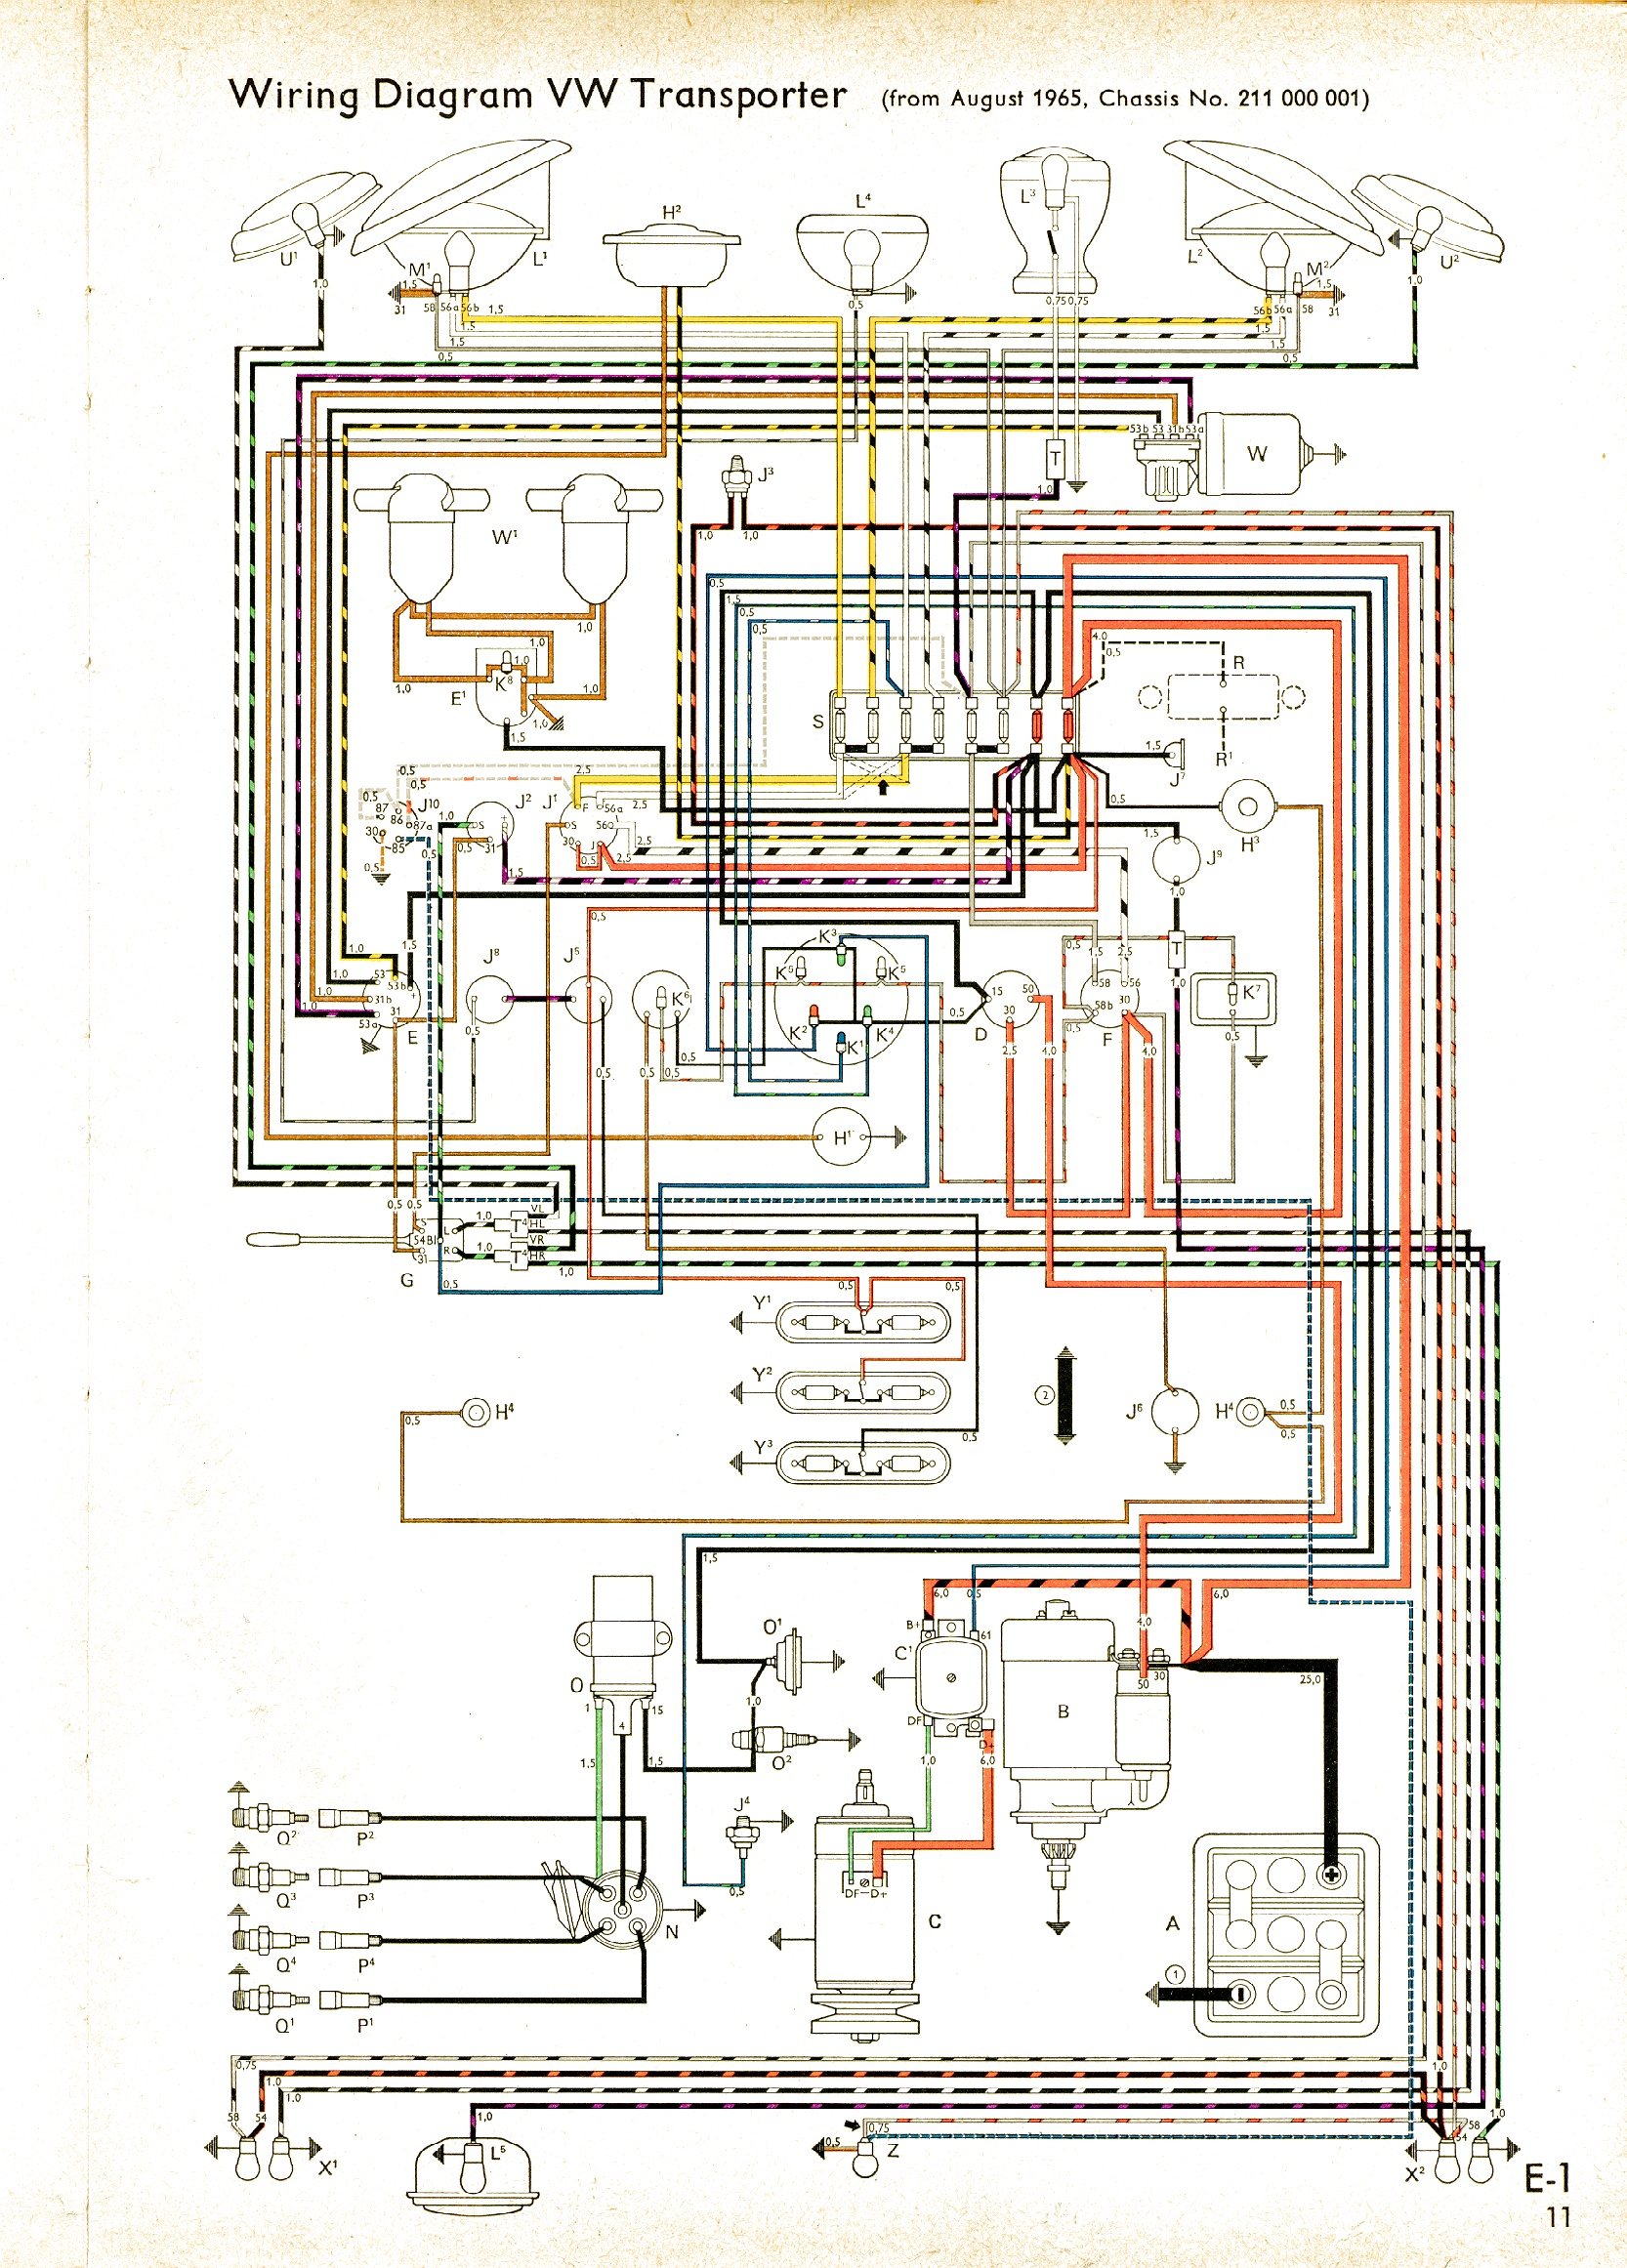 1971 Vw Wiring Diagram | Wiring Diagram  Vw Bus Wiring Harness on vw wire harness, vw wiring harness diagram, volkswagen beetle wiring harness, off road wiring harness, vw wiring harness kits, pontiac bonneville wiring harness, motorcycle wiring harness, camper wiring harness, vw engine wiring harness, vw bus alternator wiring, dodge challenger wiring harness, vw bus ignition wiring, vw thing wiring harness, porsche wiring harness, kia sportage wiring harness, volkswagen type 3 wiring harness, vw trike wiring harness, vintage vw wiring harness, trailer wiring harness, honda accord wiring harness,